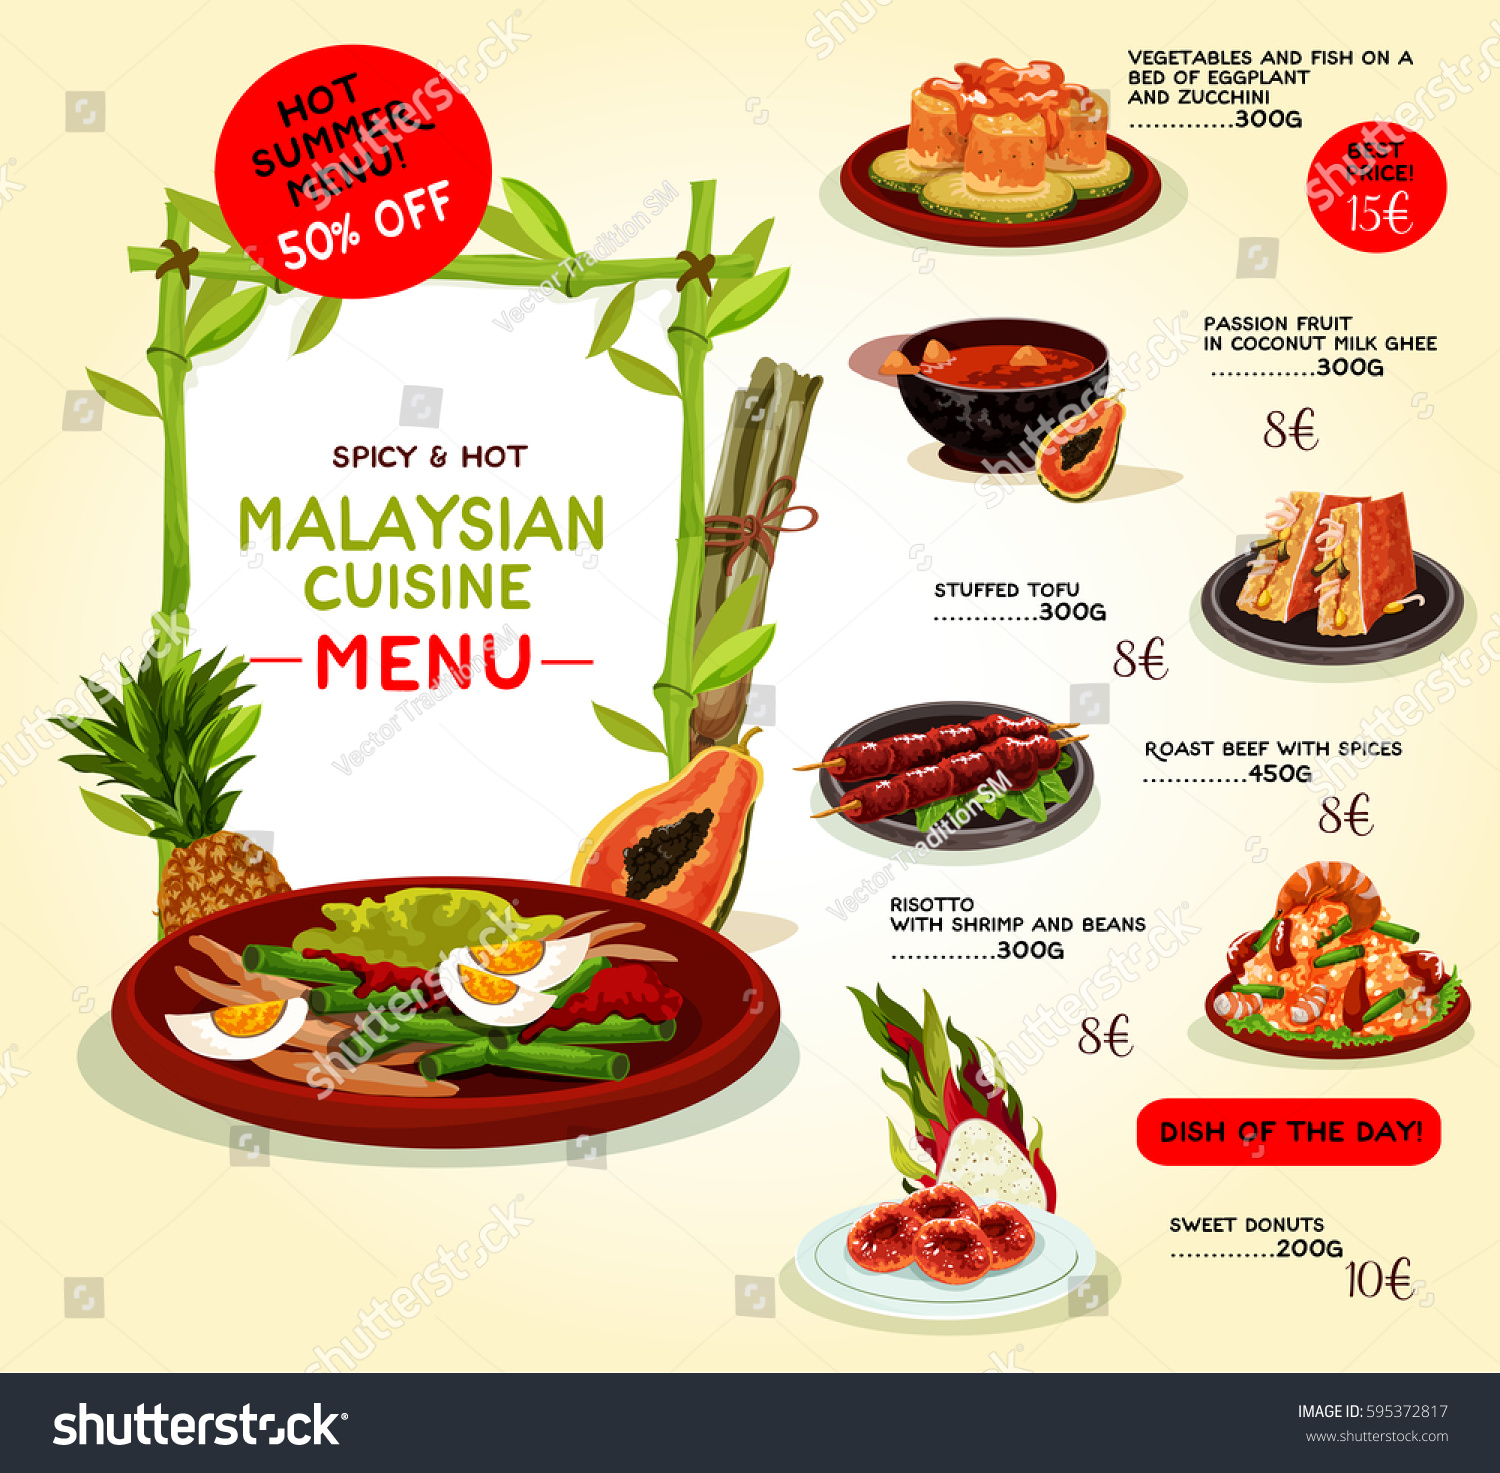 Malaysian cuisine restaurant menu template asian stock for Akina japanese cuisine menu